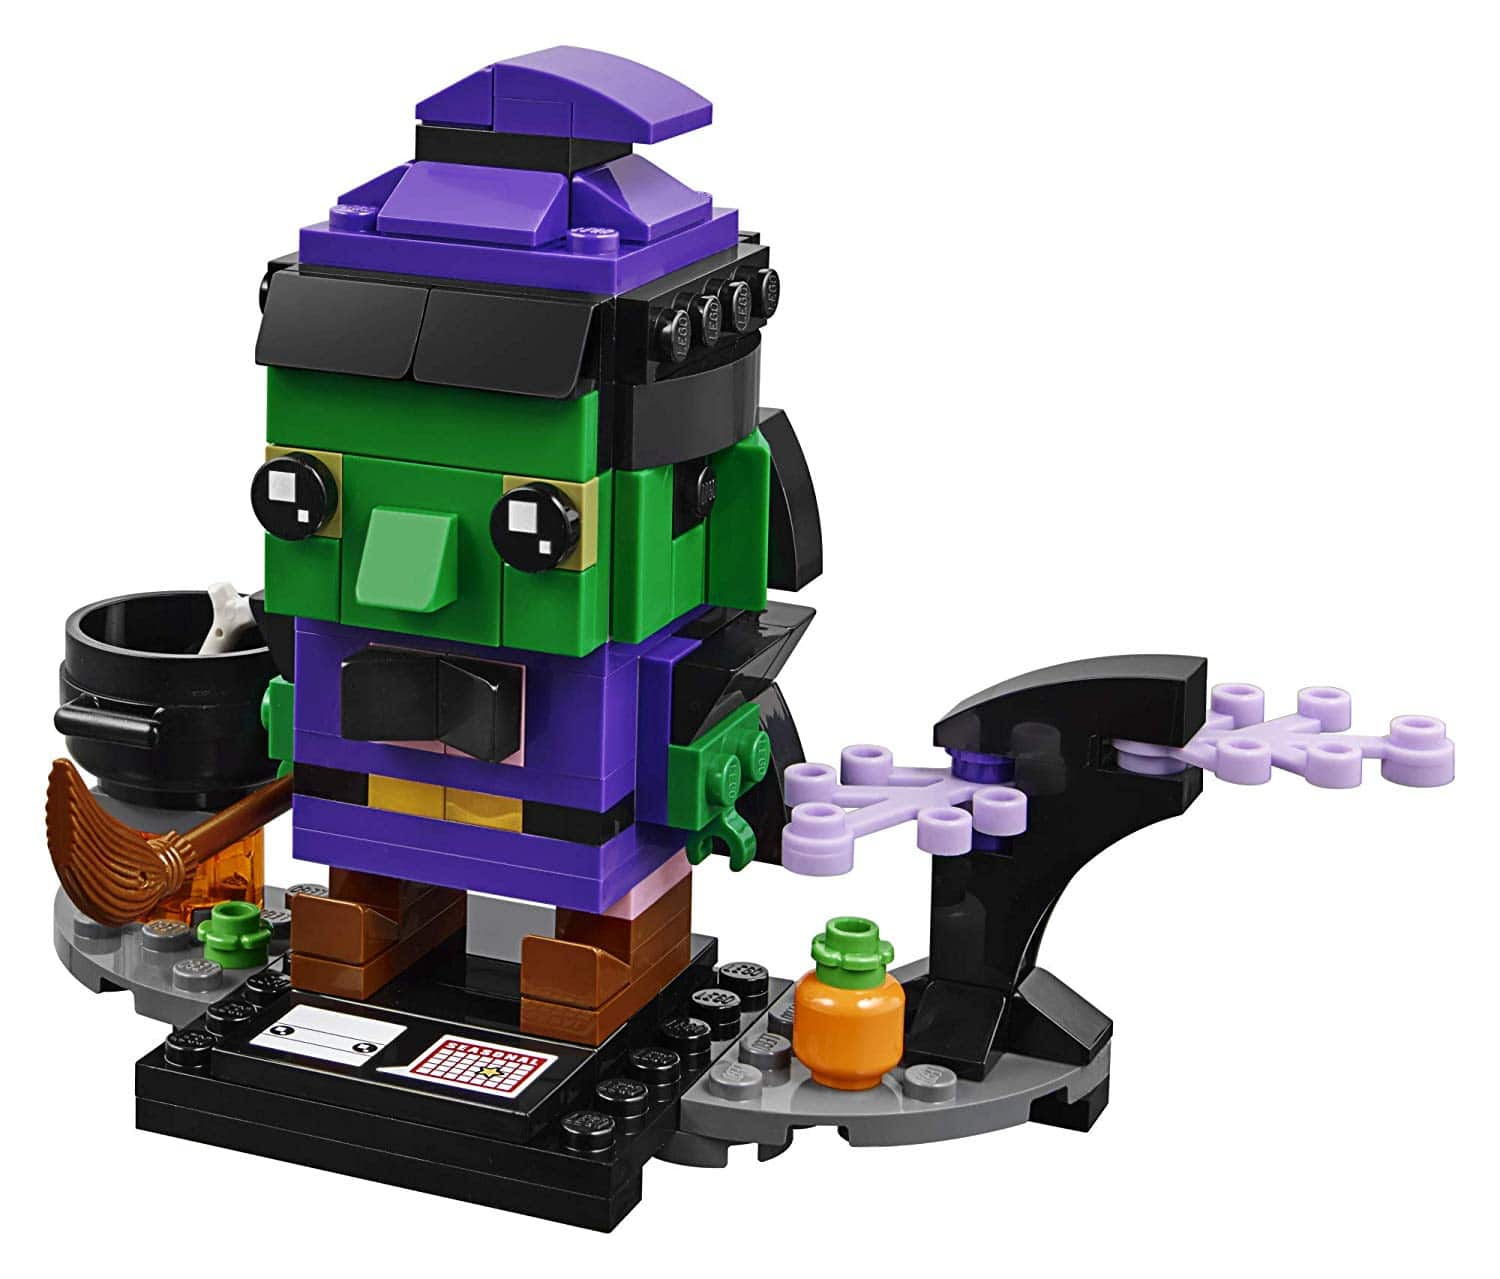 30% off LEGO BrickHeadz Halloween Witch 40272 Building Kit Free One Day Shipping with Prime $6.99